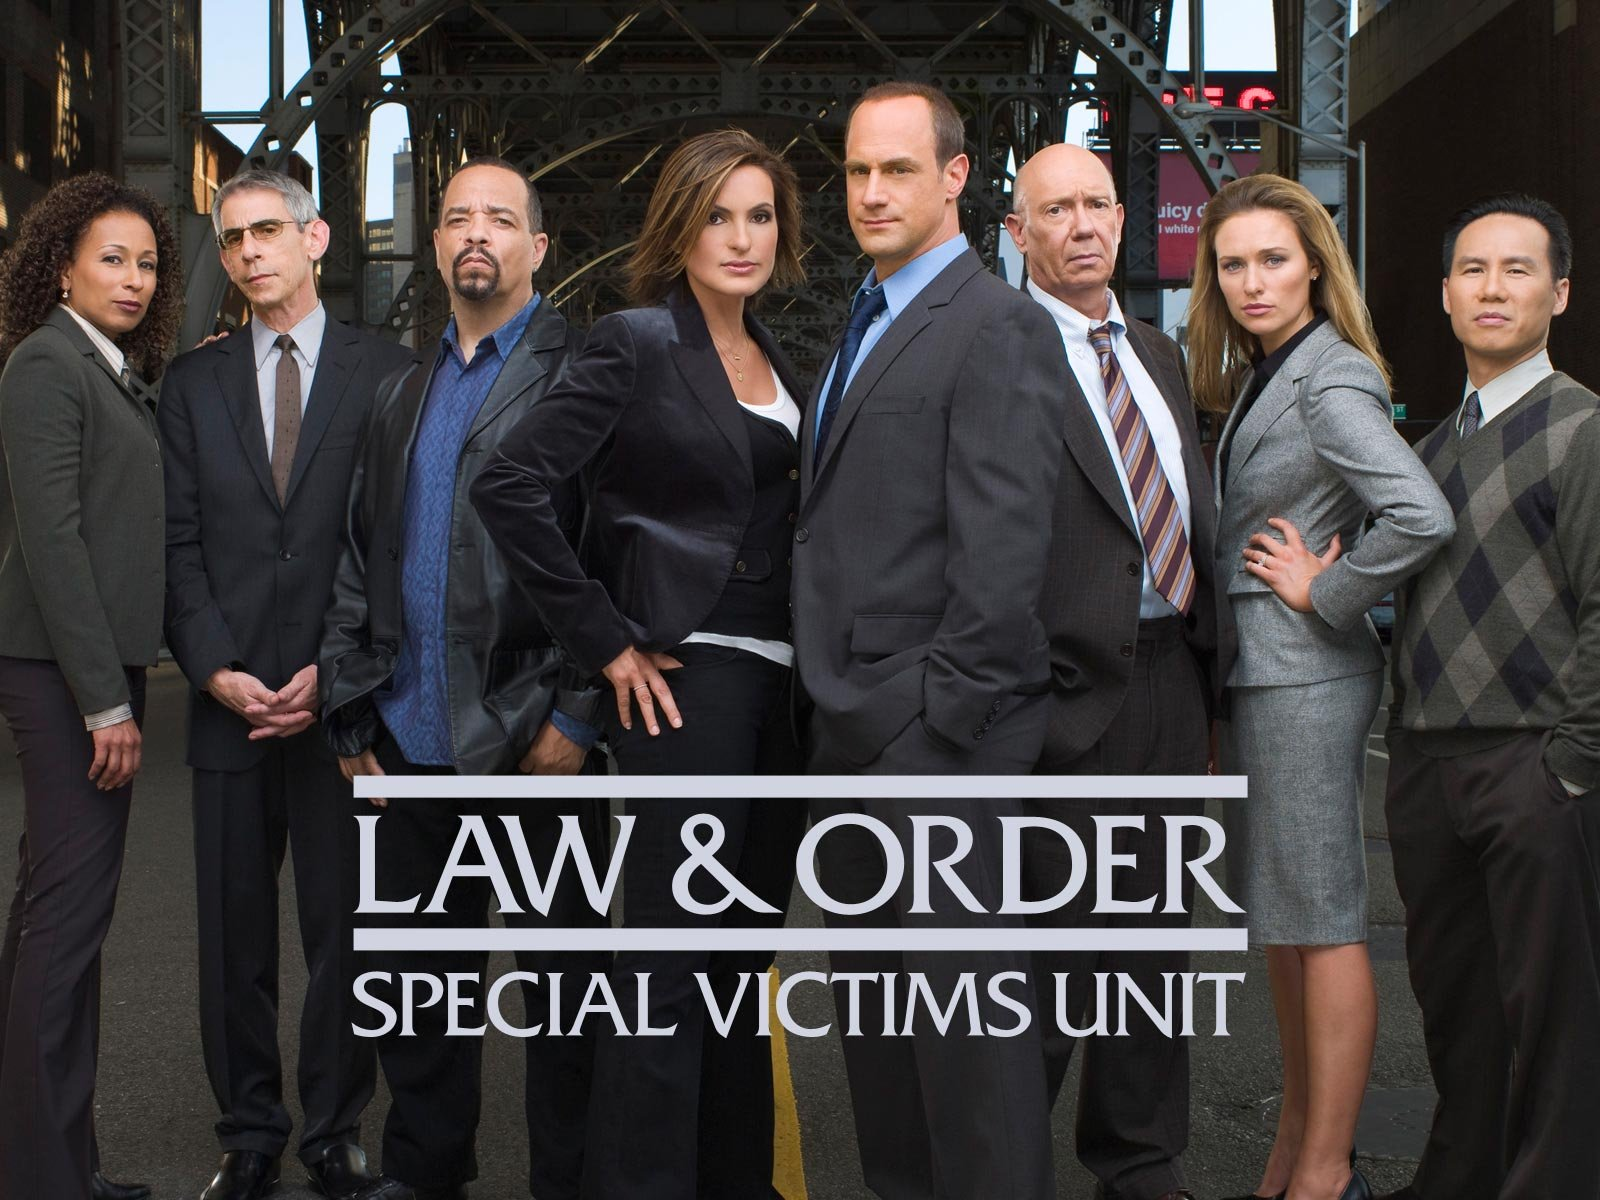 Promotional poster for LAW & ORDER: SVU.